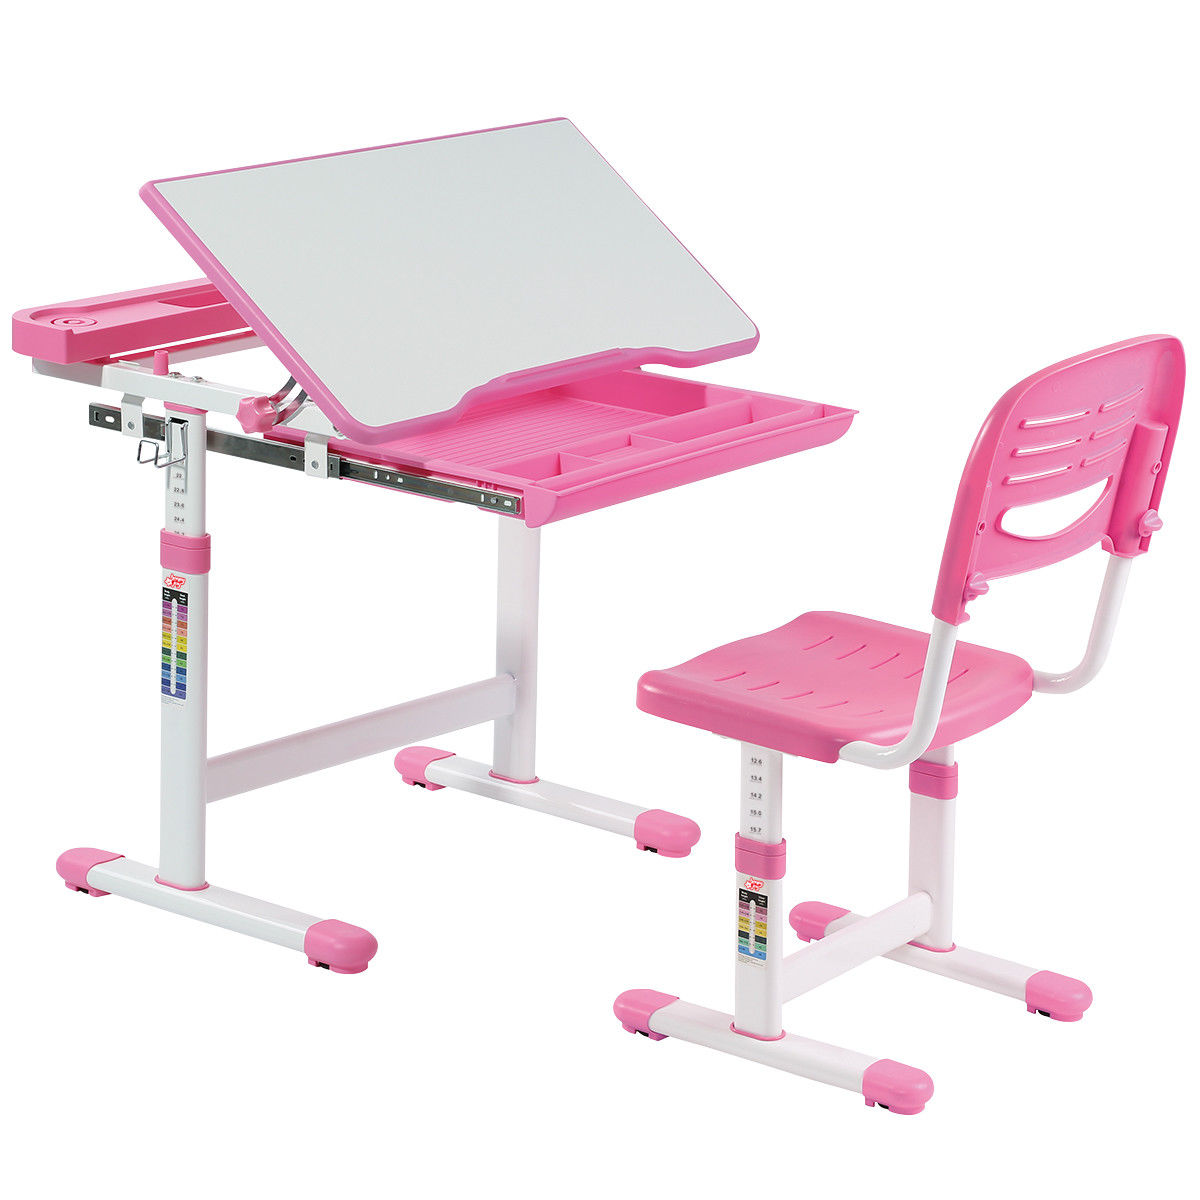 Gymax Height Adjustable Childrenu0027s Desk Chair Set Multifunctional Study  Drawing Pink   Walmart.com